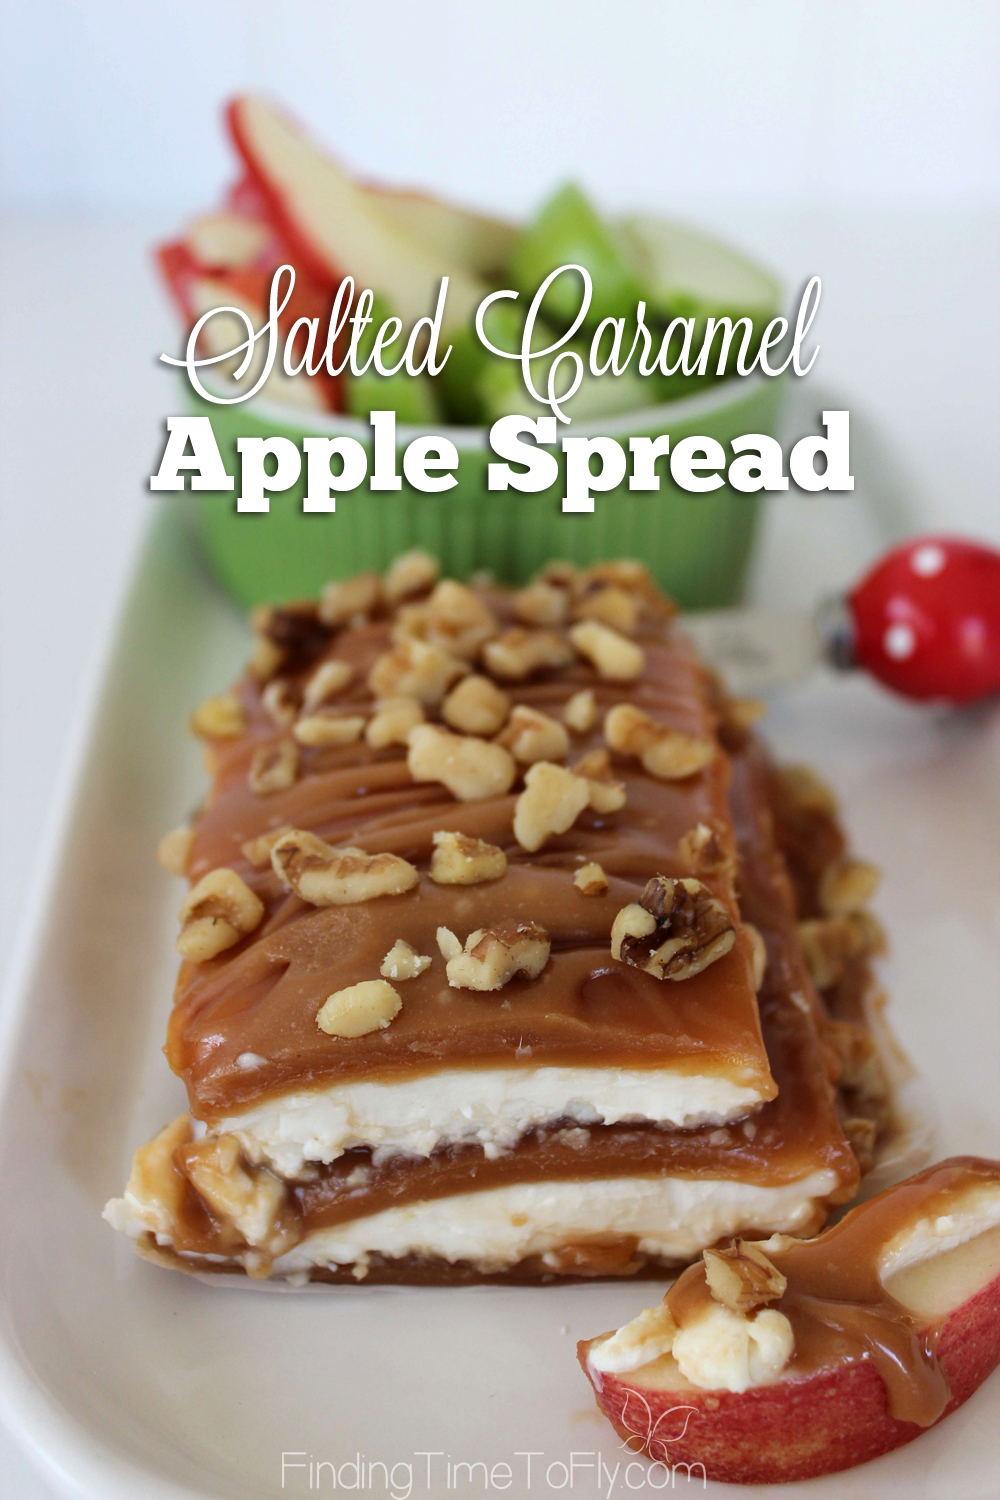 Salted Caramel Apple Spread is the perfect fall appetizer. Great for Thanksgiving Dinner, too. Make your own caramel sauce or save time using prepared caramel.